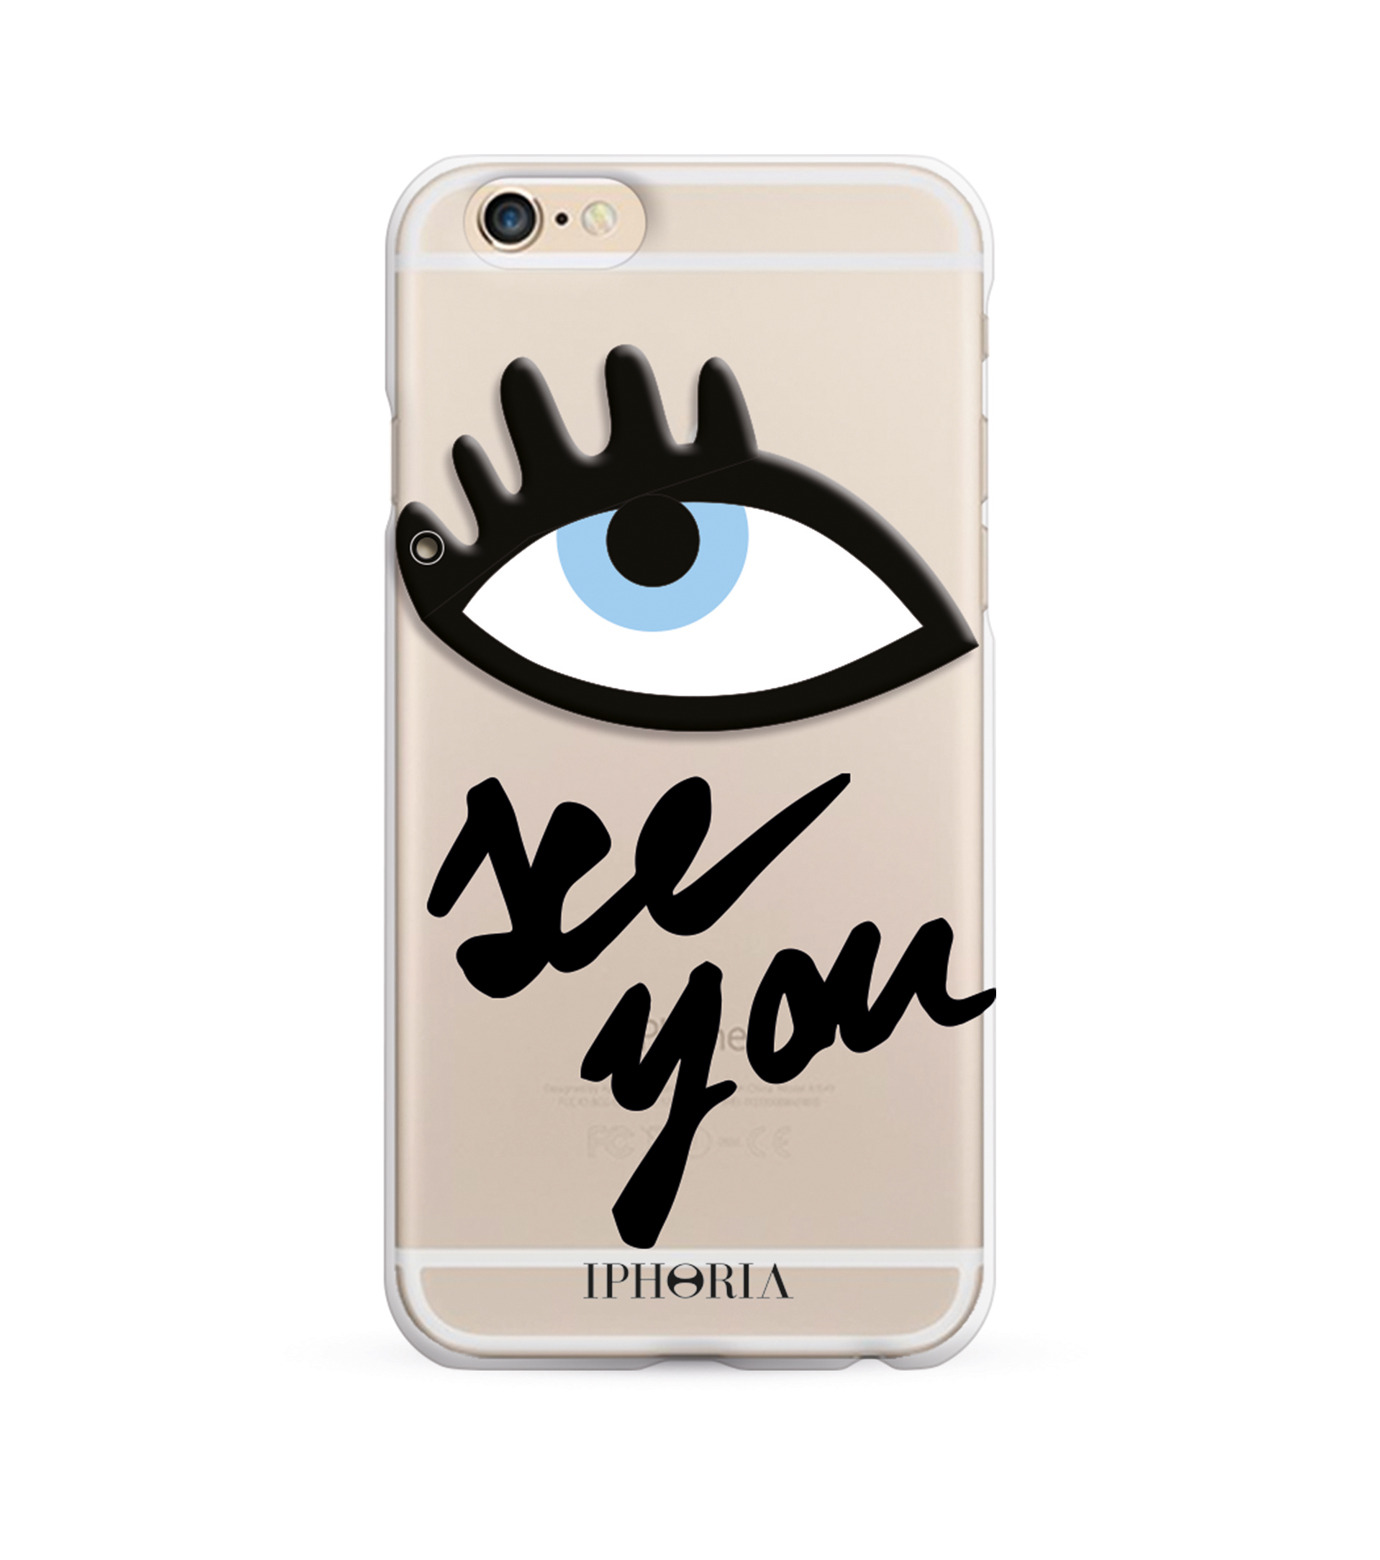 IPHORIA(アイフォリア)のSEE YOU for iPhone 7-NONE(ケースiphone7/7plus/case iphone7/7plus)-14014-0 拡大詳細画像2